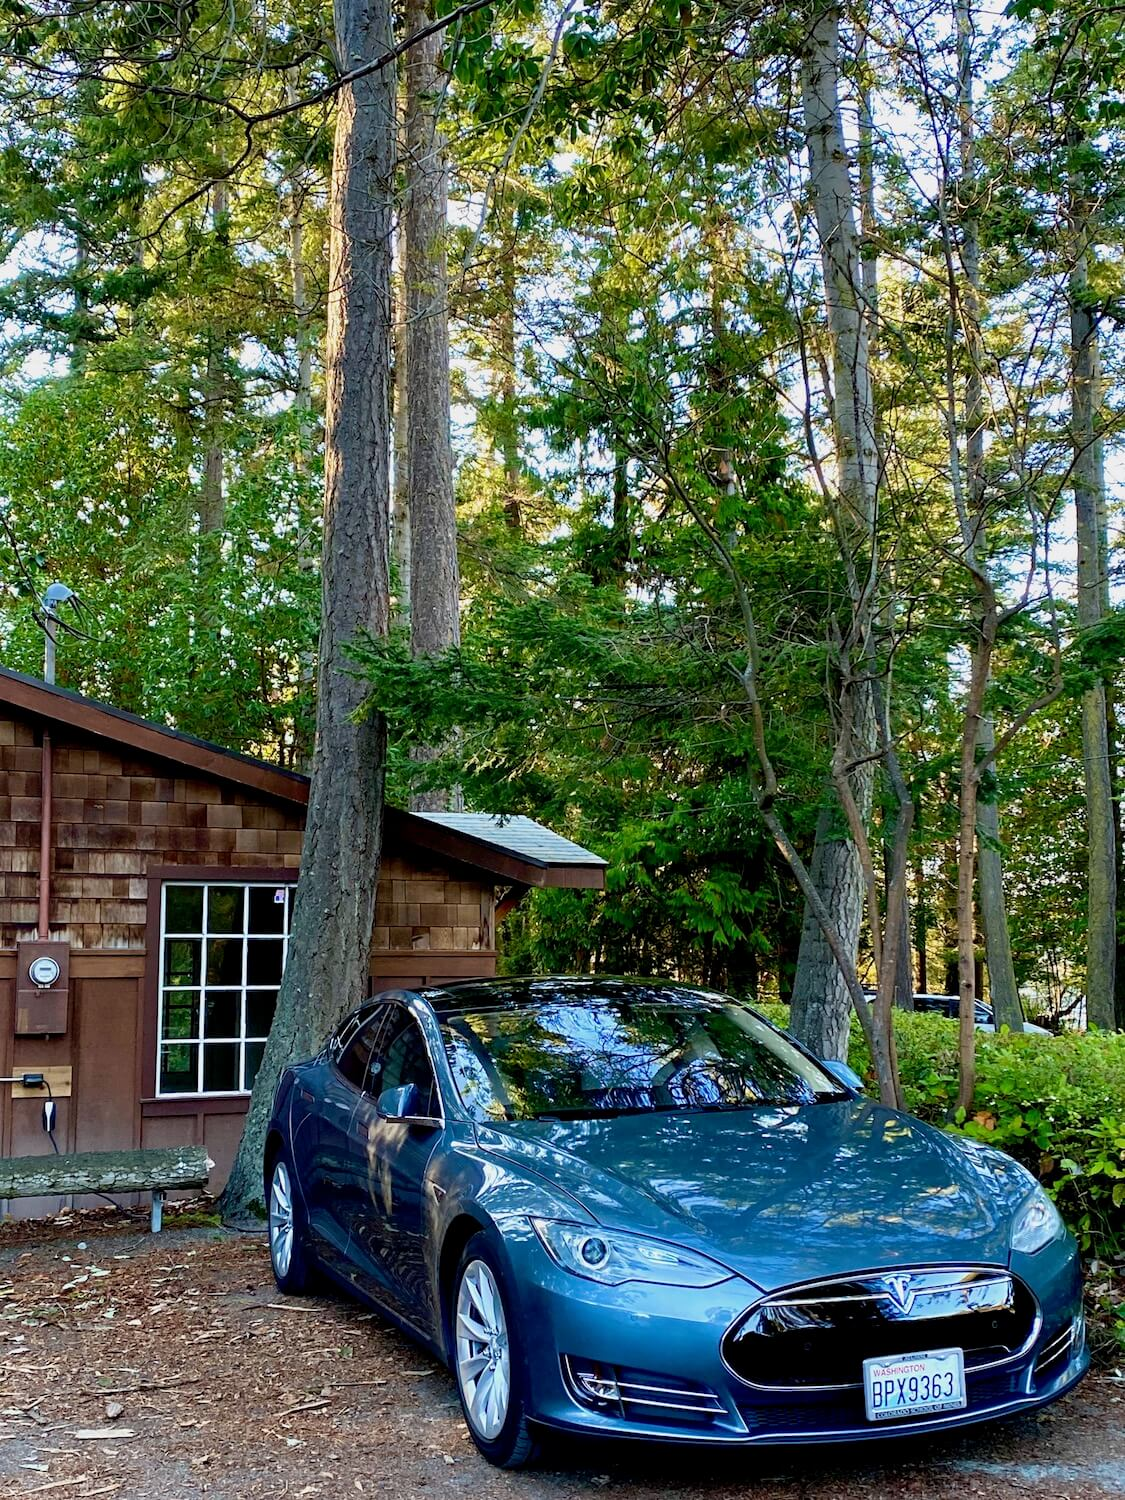 An electric vehicle charges along side a brown building with cedar shake siding. The electric meter is seen next to the box connecting to the vehicle which is situated under coastal fir trees.